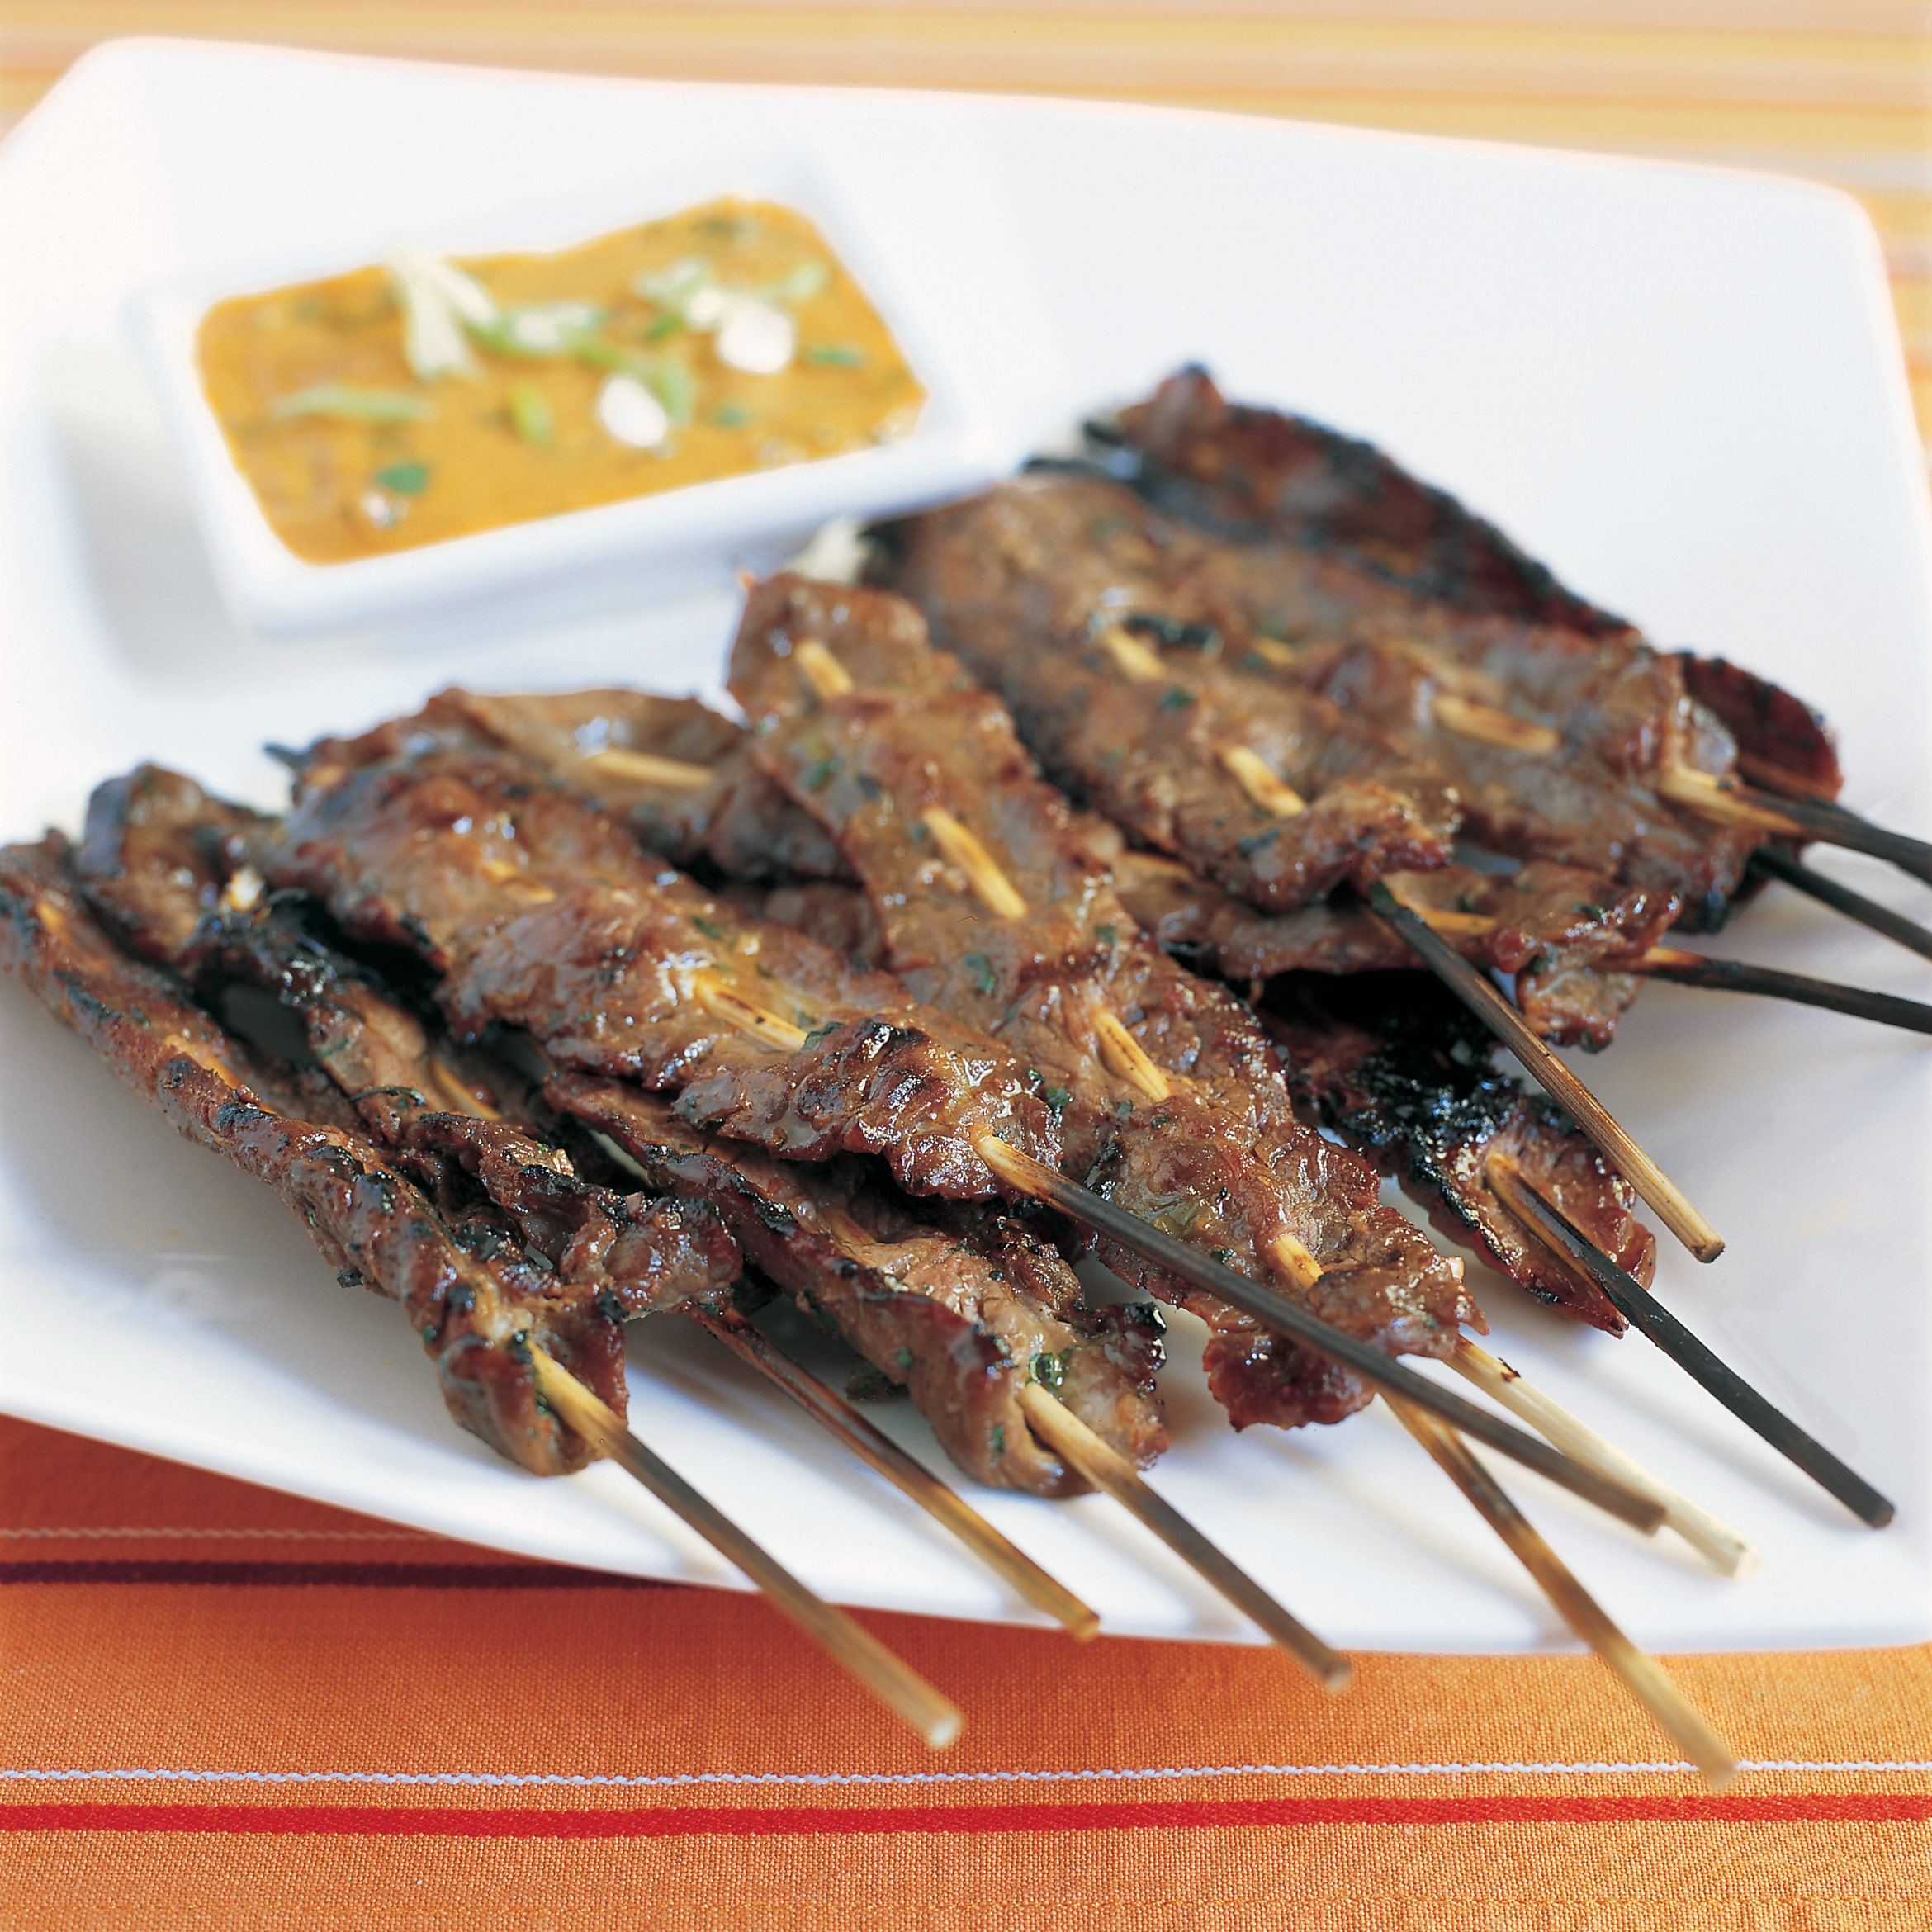 beefsatay_article.jpg